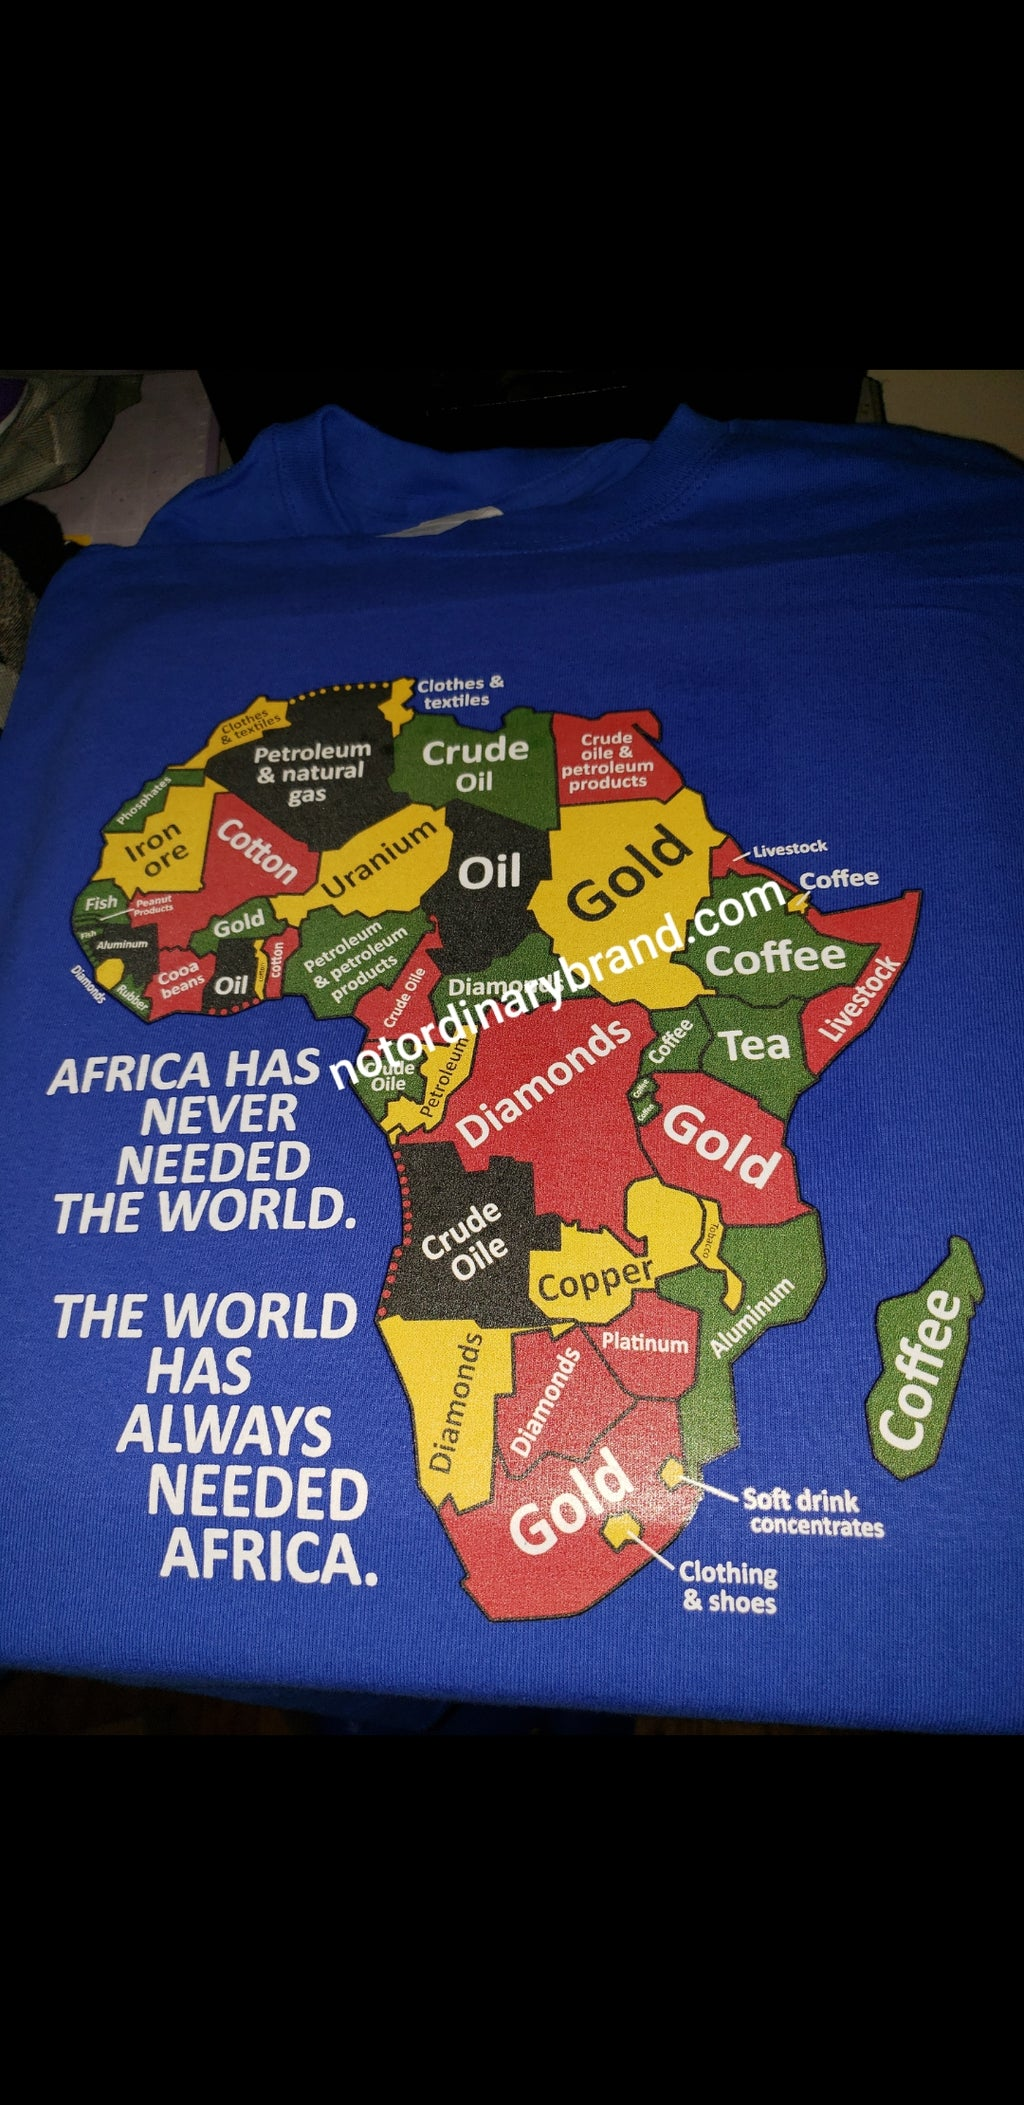 Africa supplier of great things.